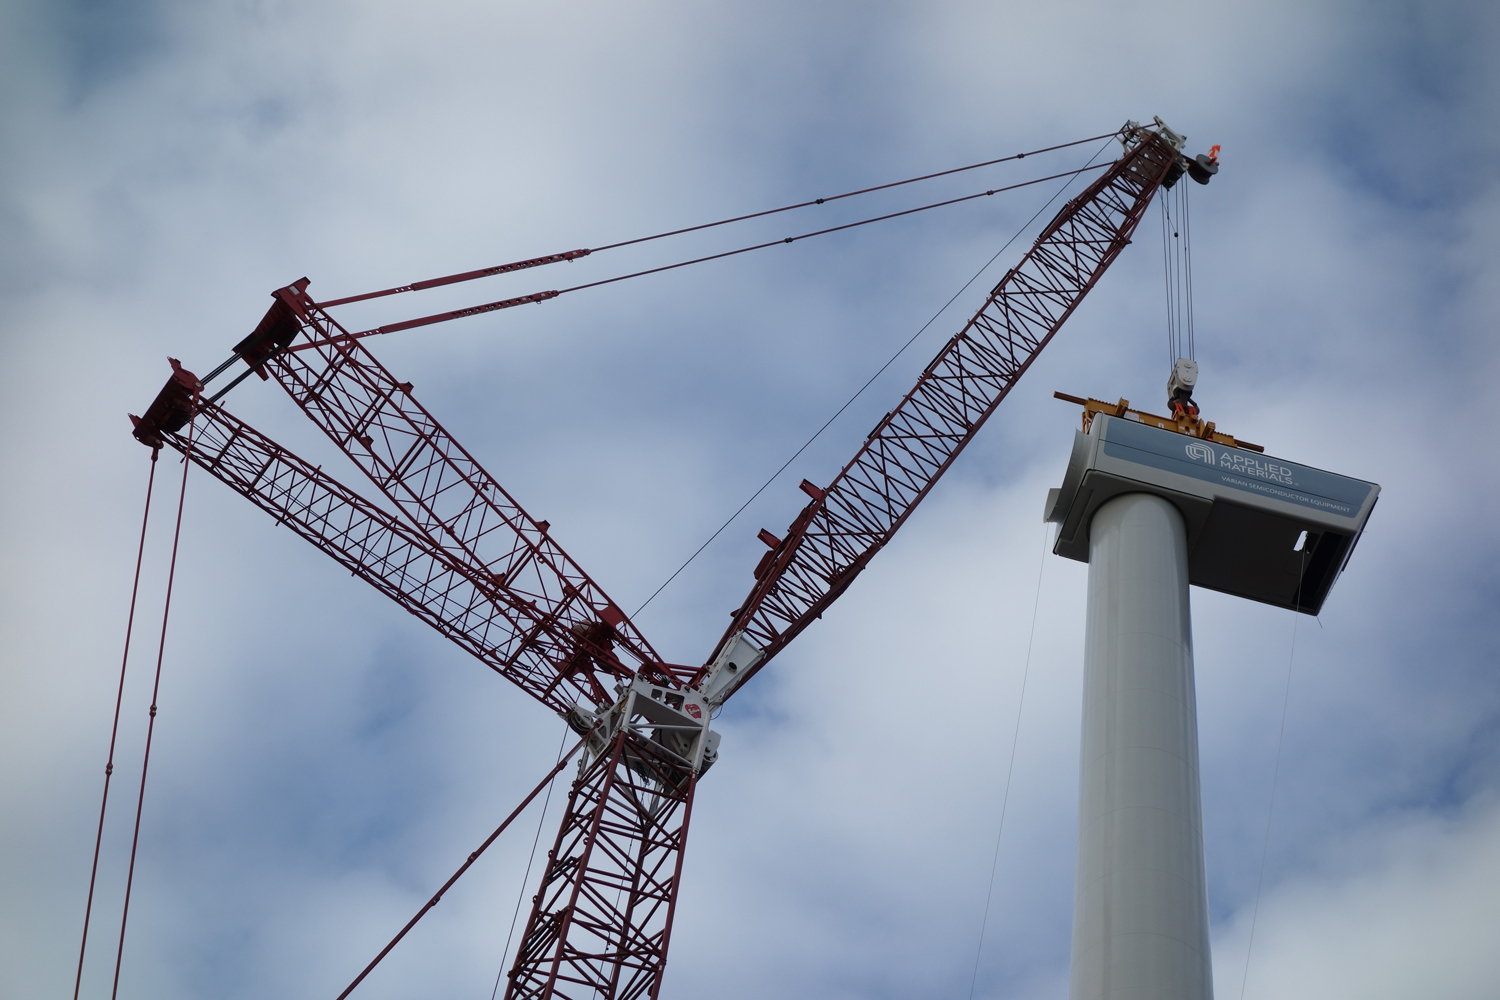 Varian wind turbine installation 11-2-12 (3a)